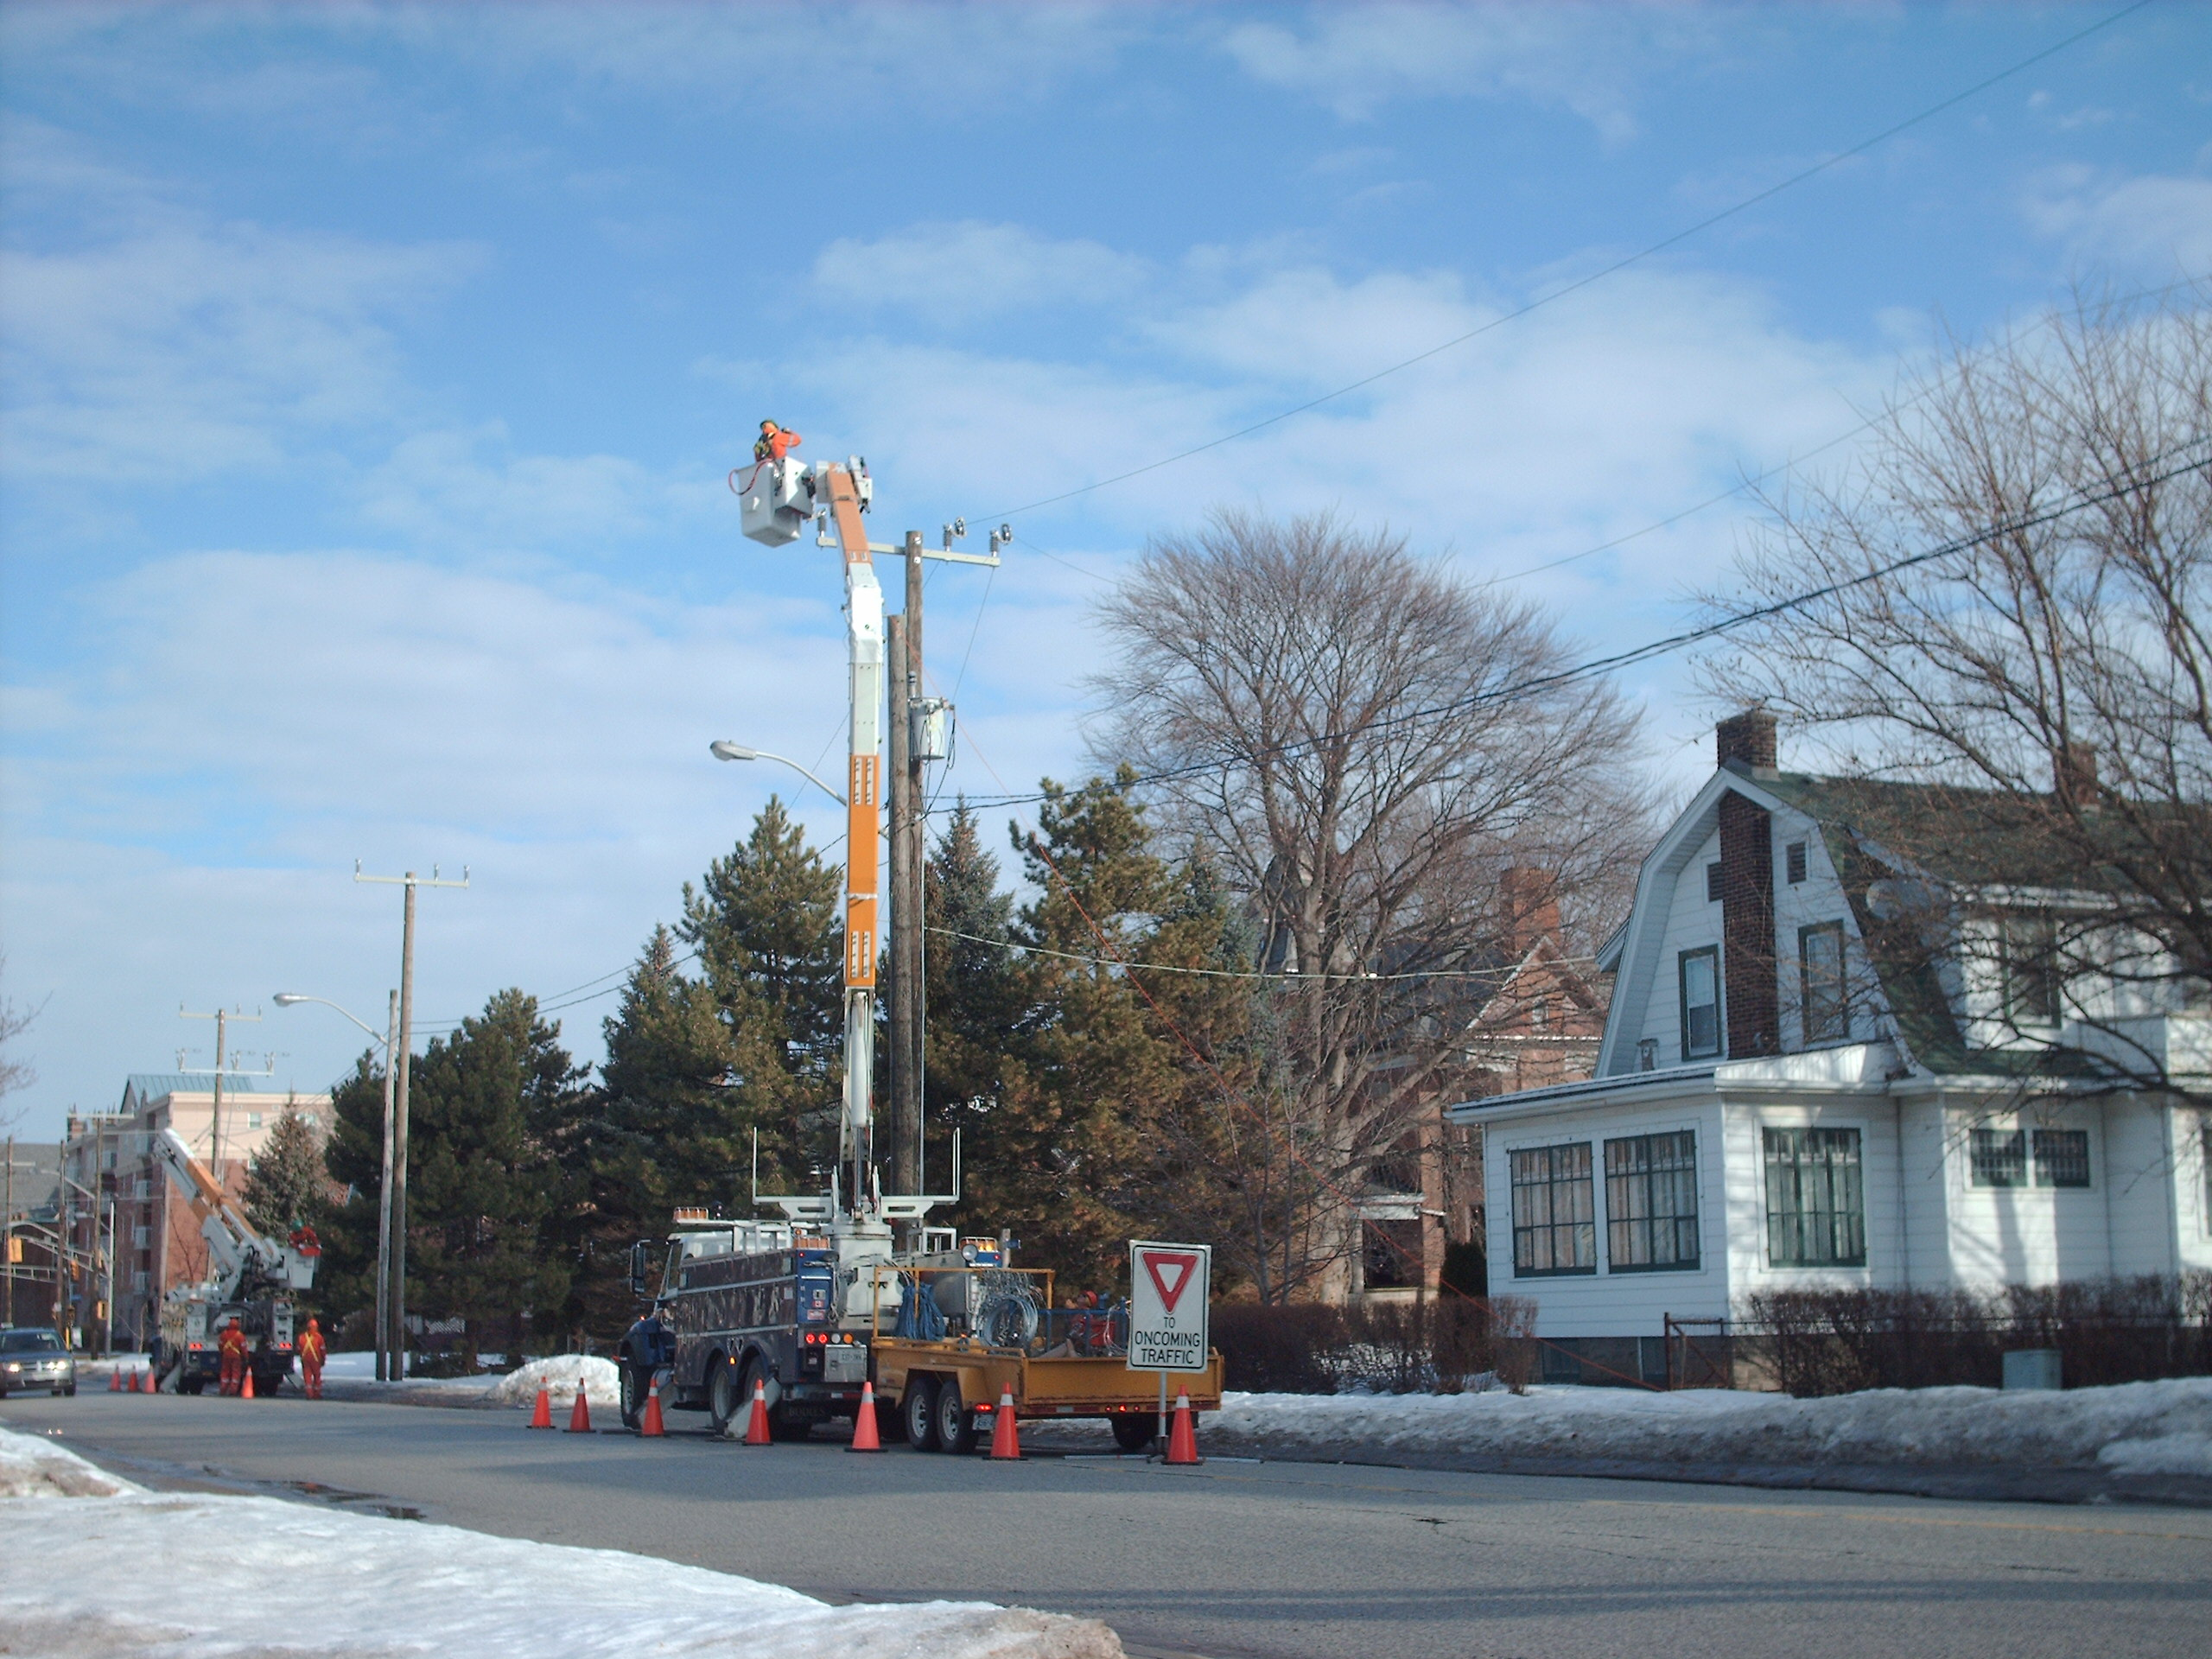 Entegrus crews replace poles and upgrade service on William St. Chatham. Feb. 2014 (Photo by Simon Crouch)